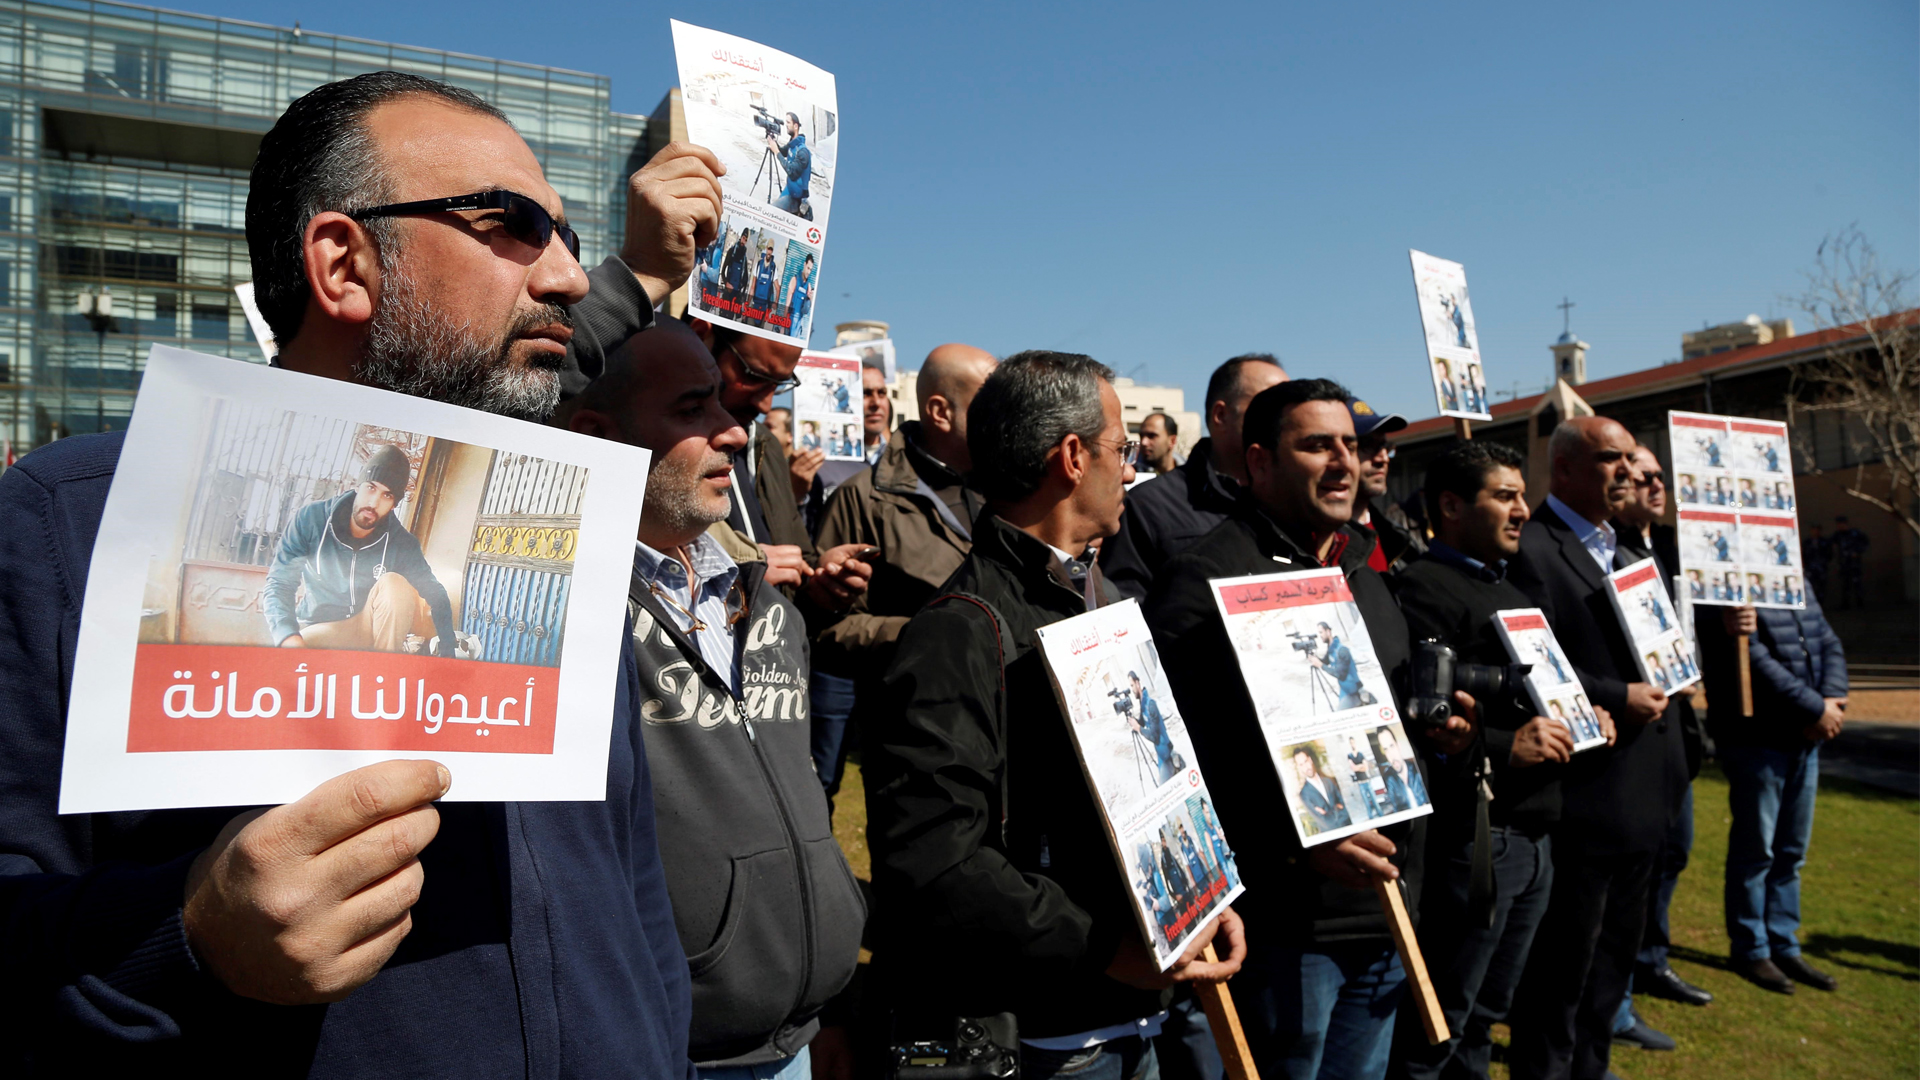 A protest held for the return of Samir Kassab